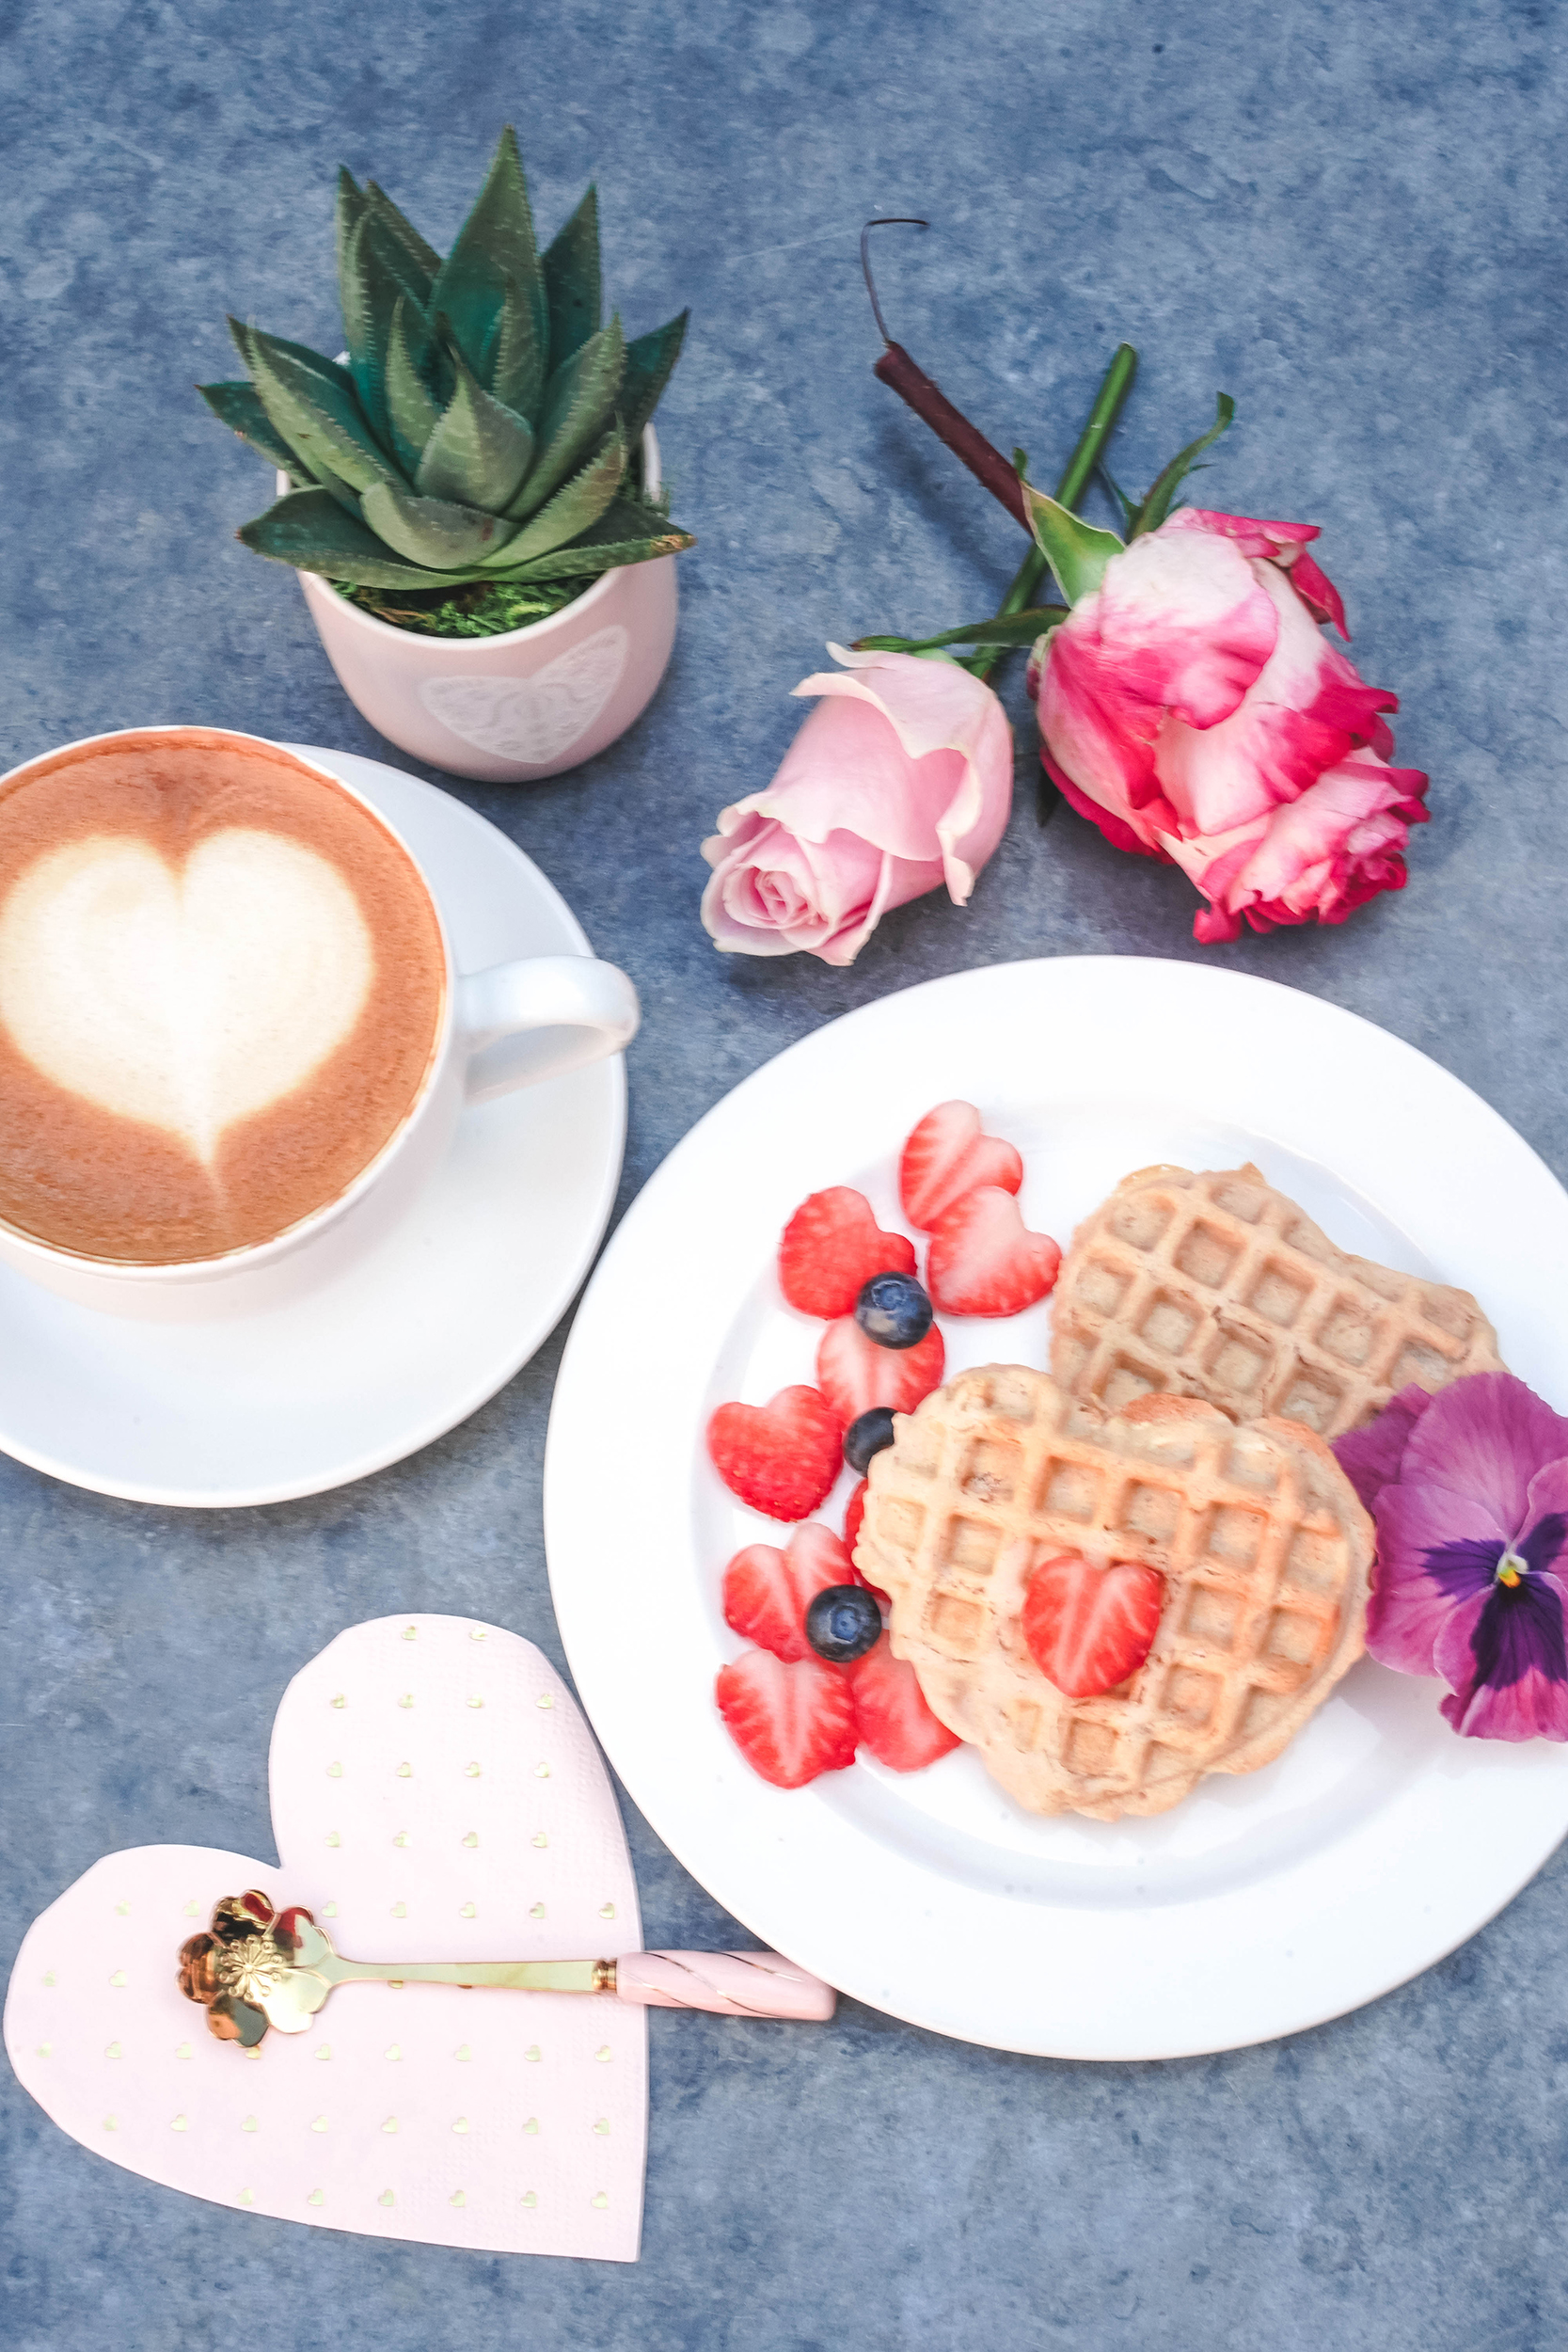 Gluten-Free Vegan Mini Heart Waffles, Flower Coffee Spoon, Heart Latte